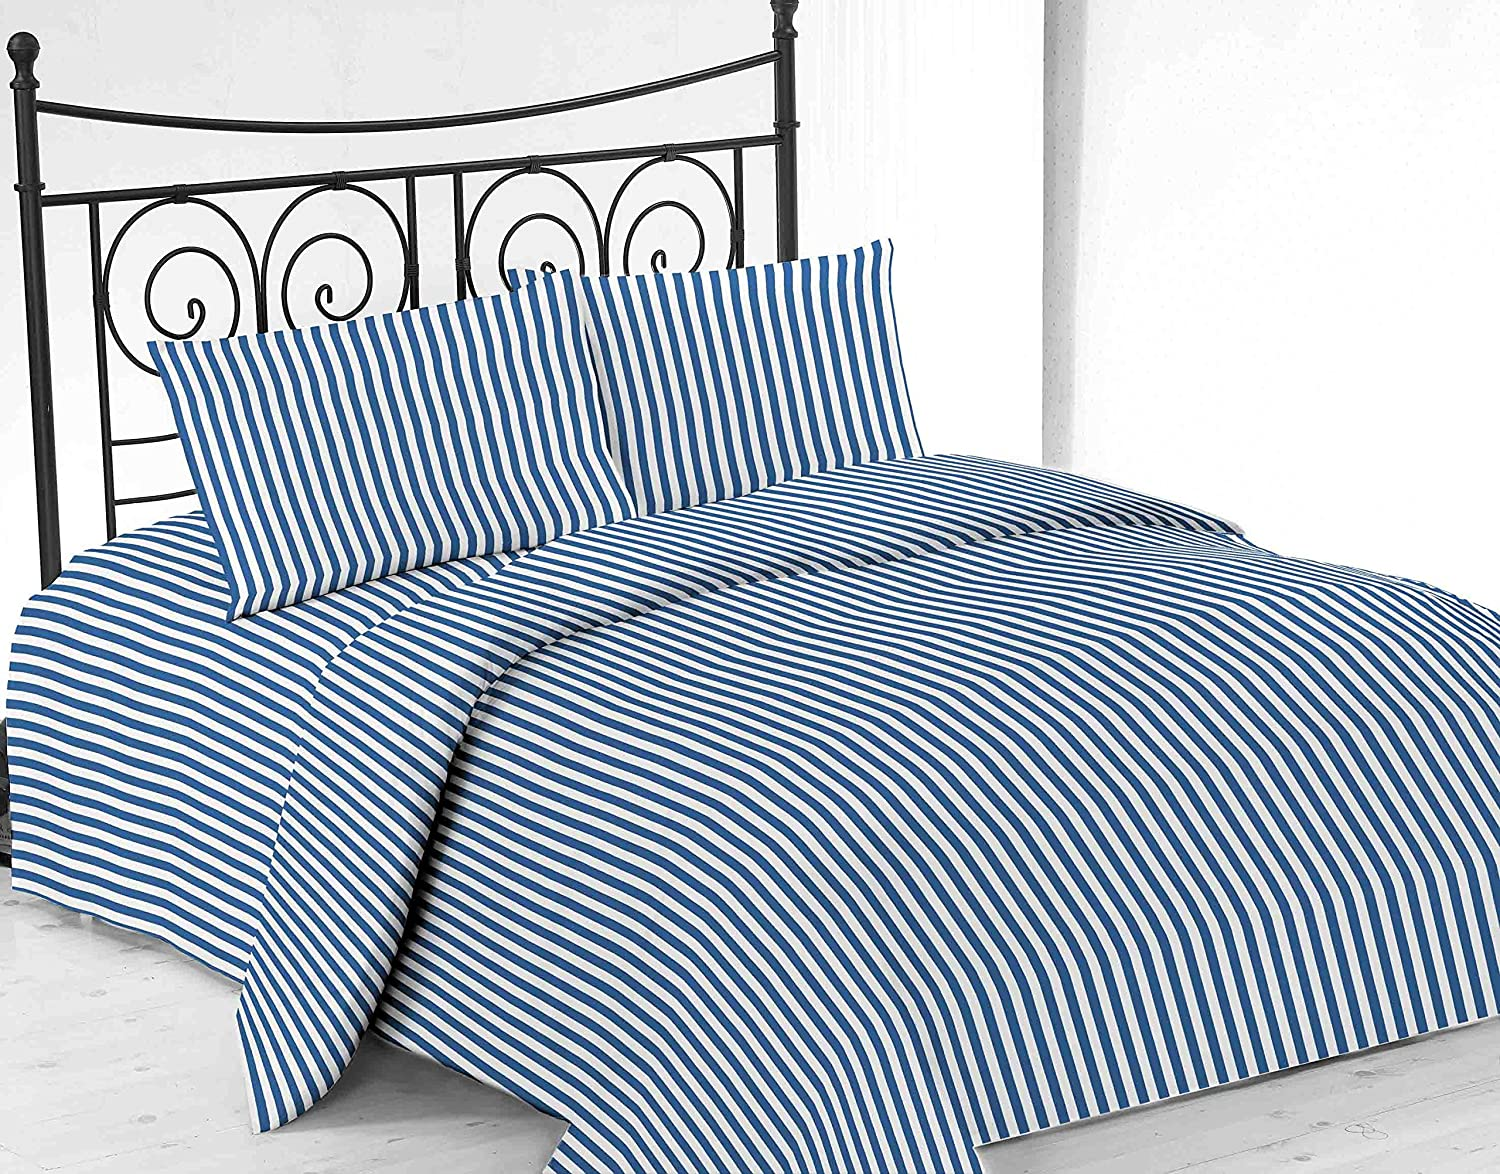 United Linens printed striped 4 piece sheet sets